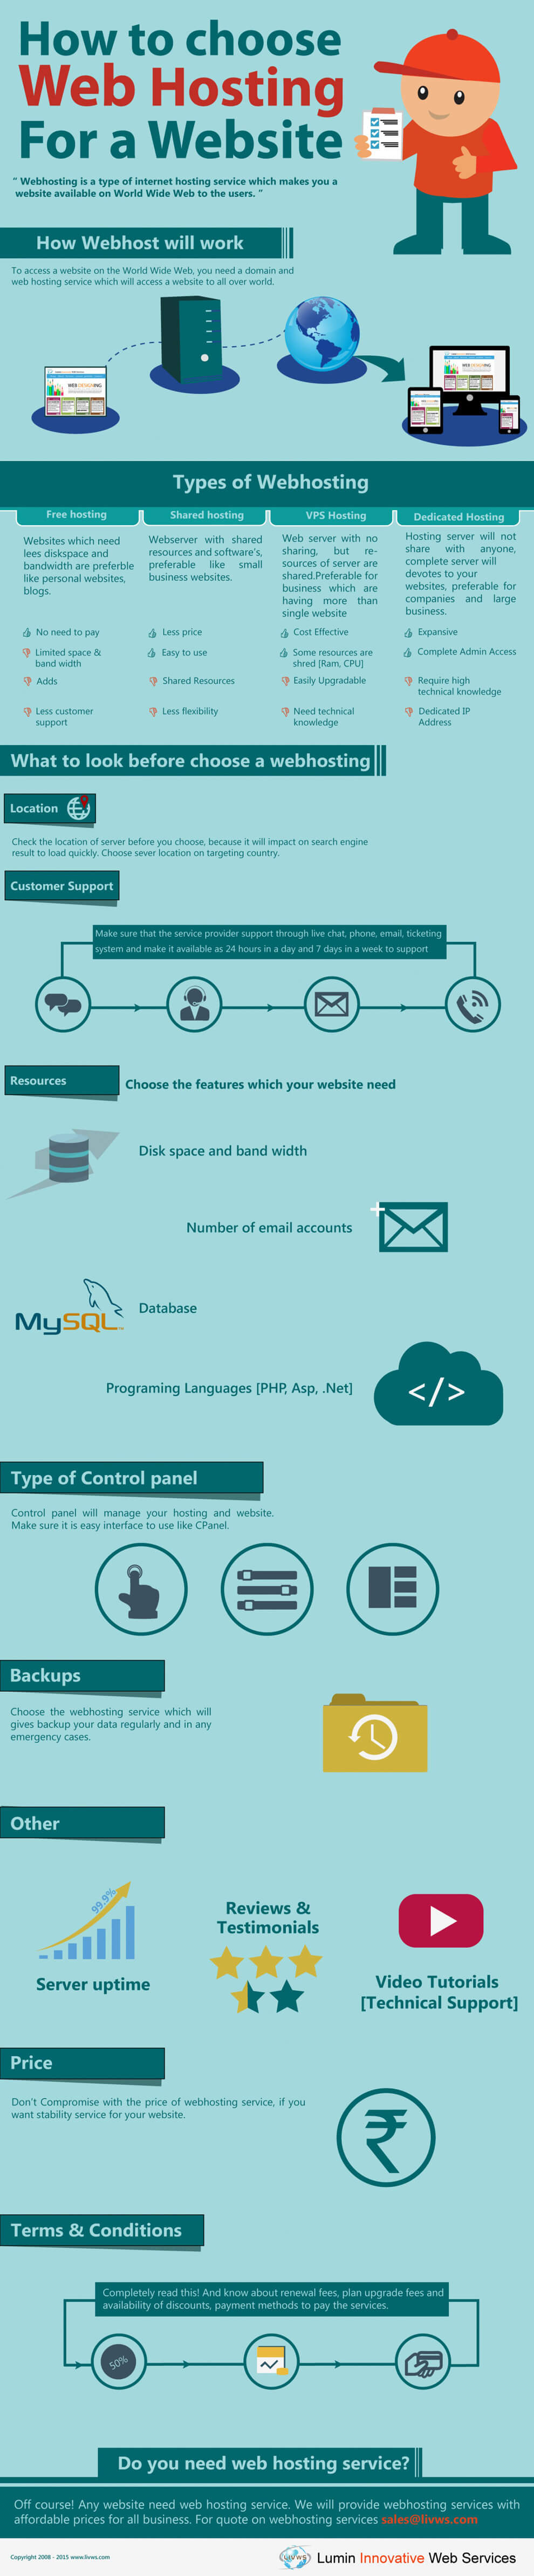 how-to-choose-web-hosting-plan-for-a-website-infographic